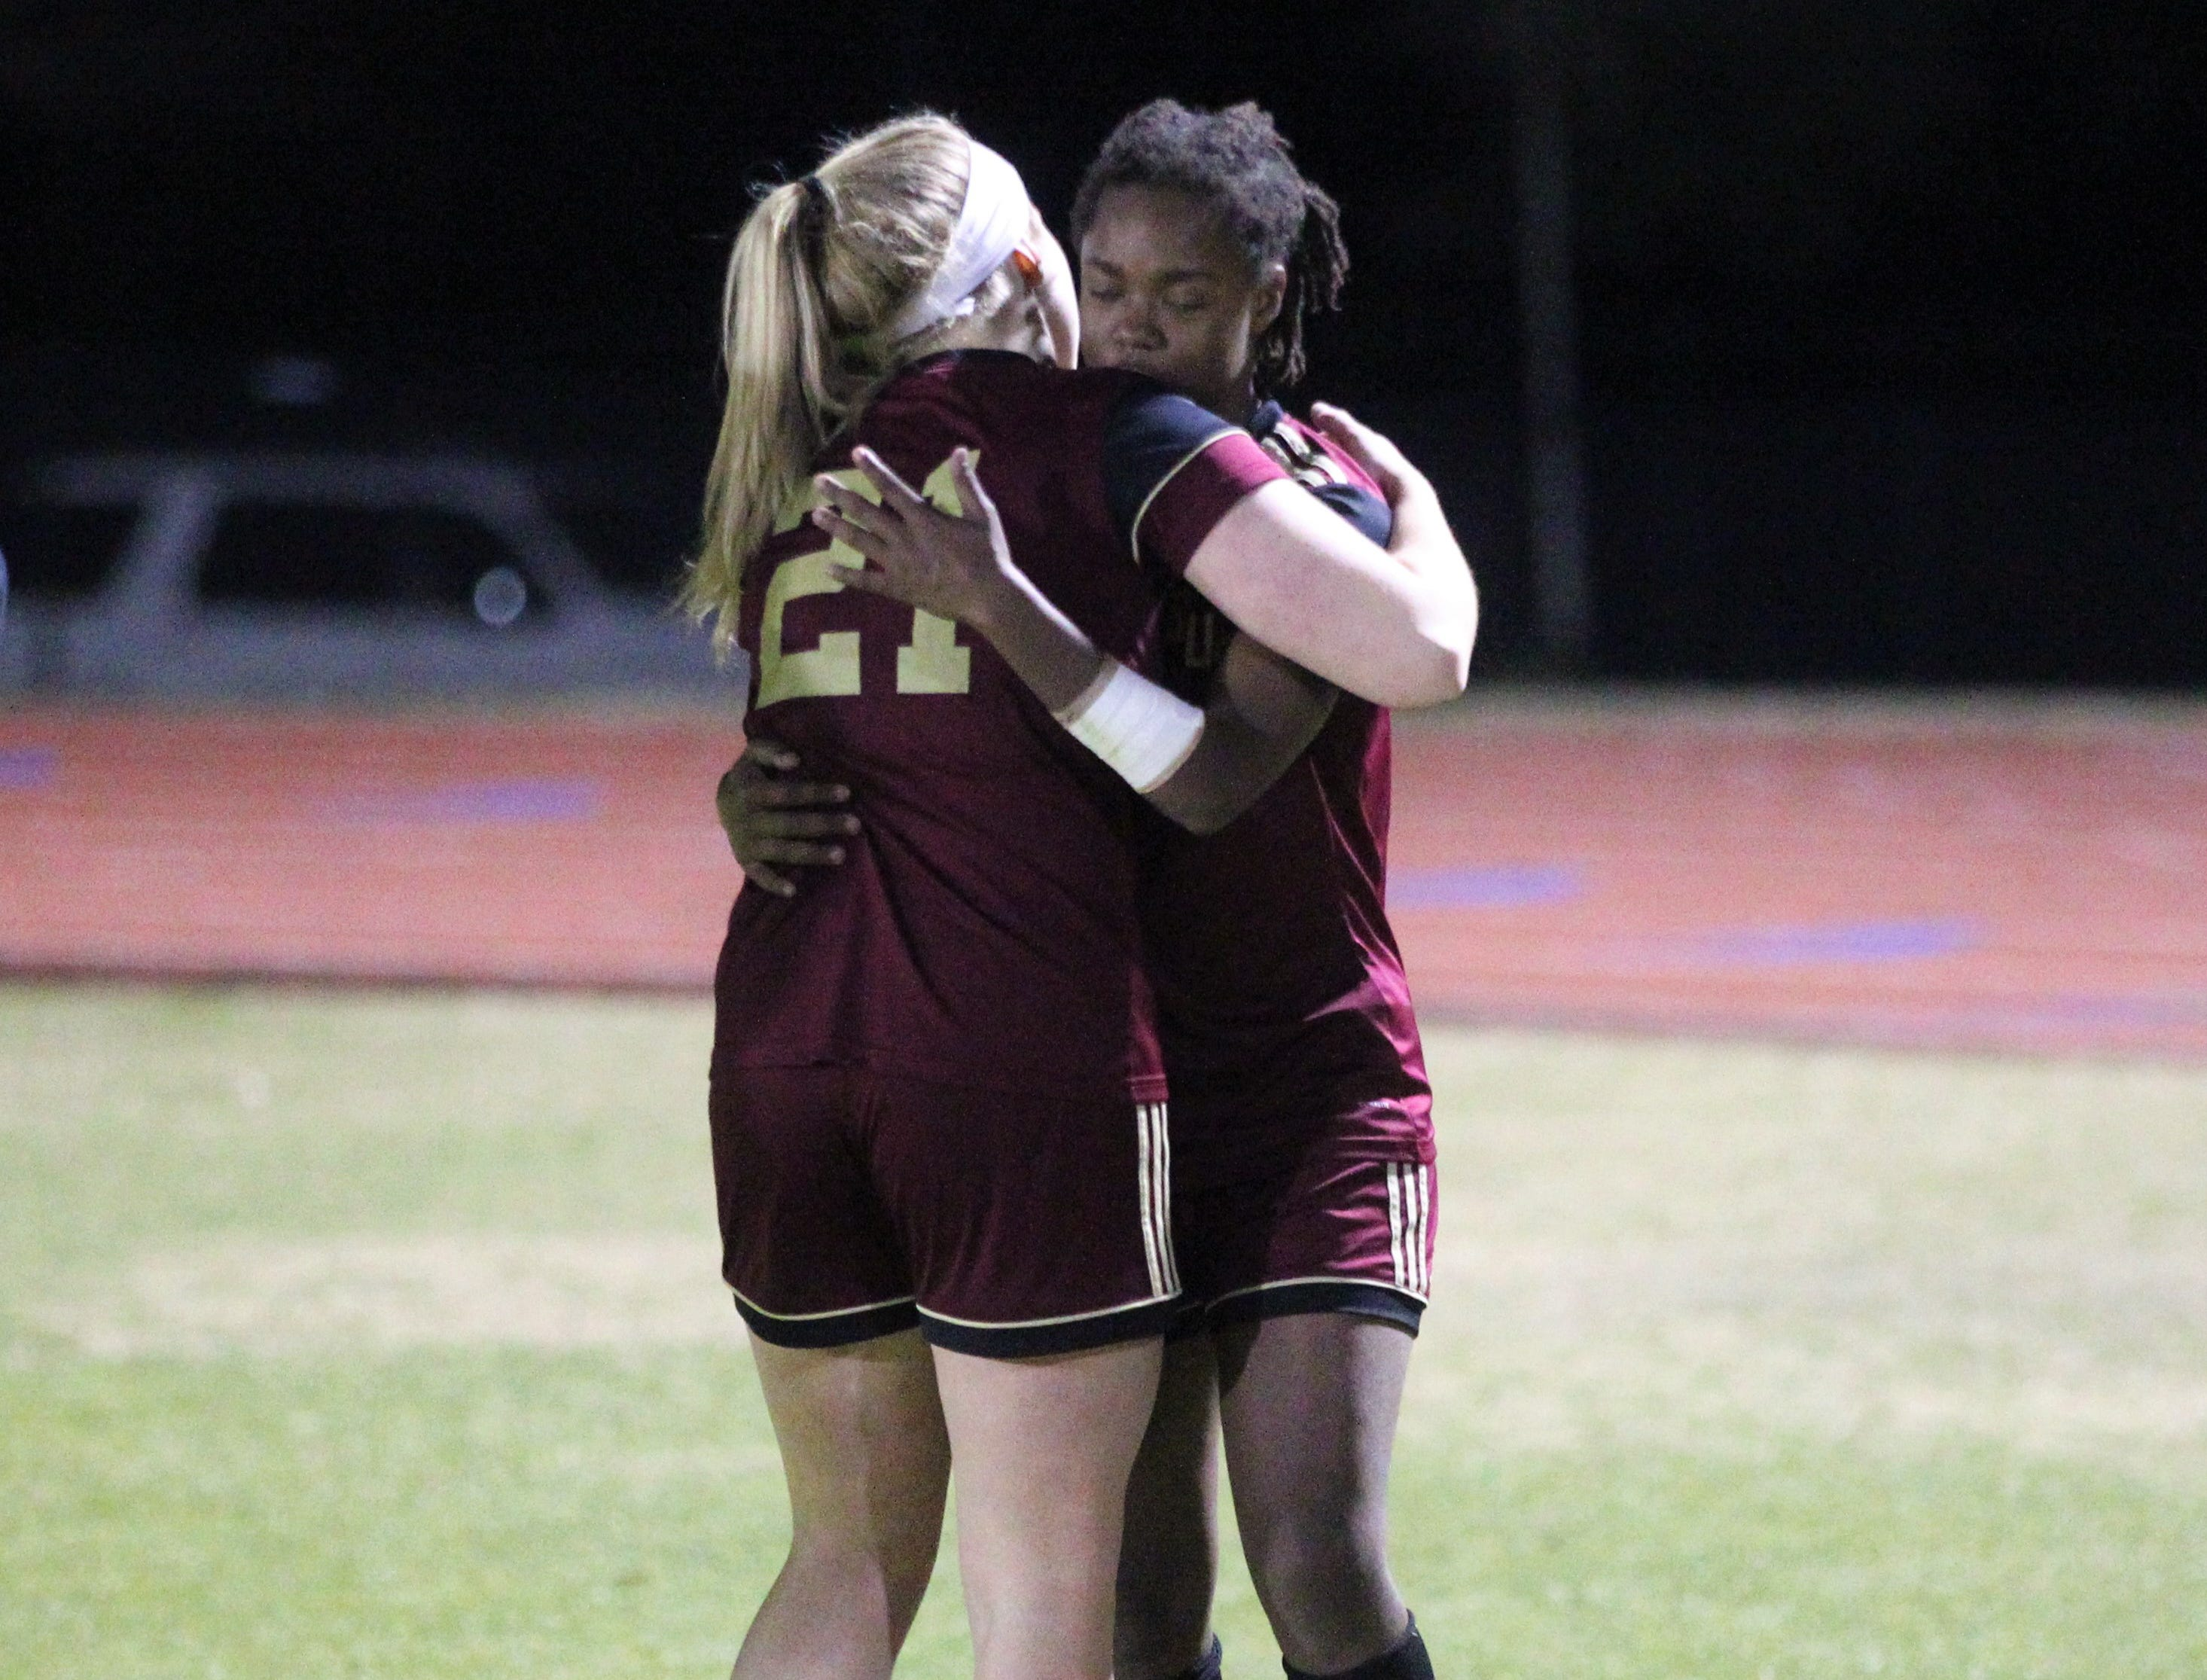 Florida High's Claire Wilder greets Janae Scott, who was injured and missed 40 minutes of soccer, as South Walton's girls soccer team edged the Seminoles 5-4 in a penalty-kick shootout during a Region 1-2A semifinal on Feb. 8, 2019.